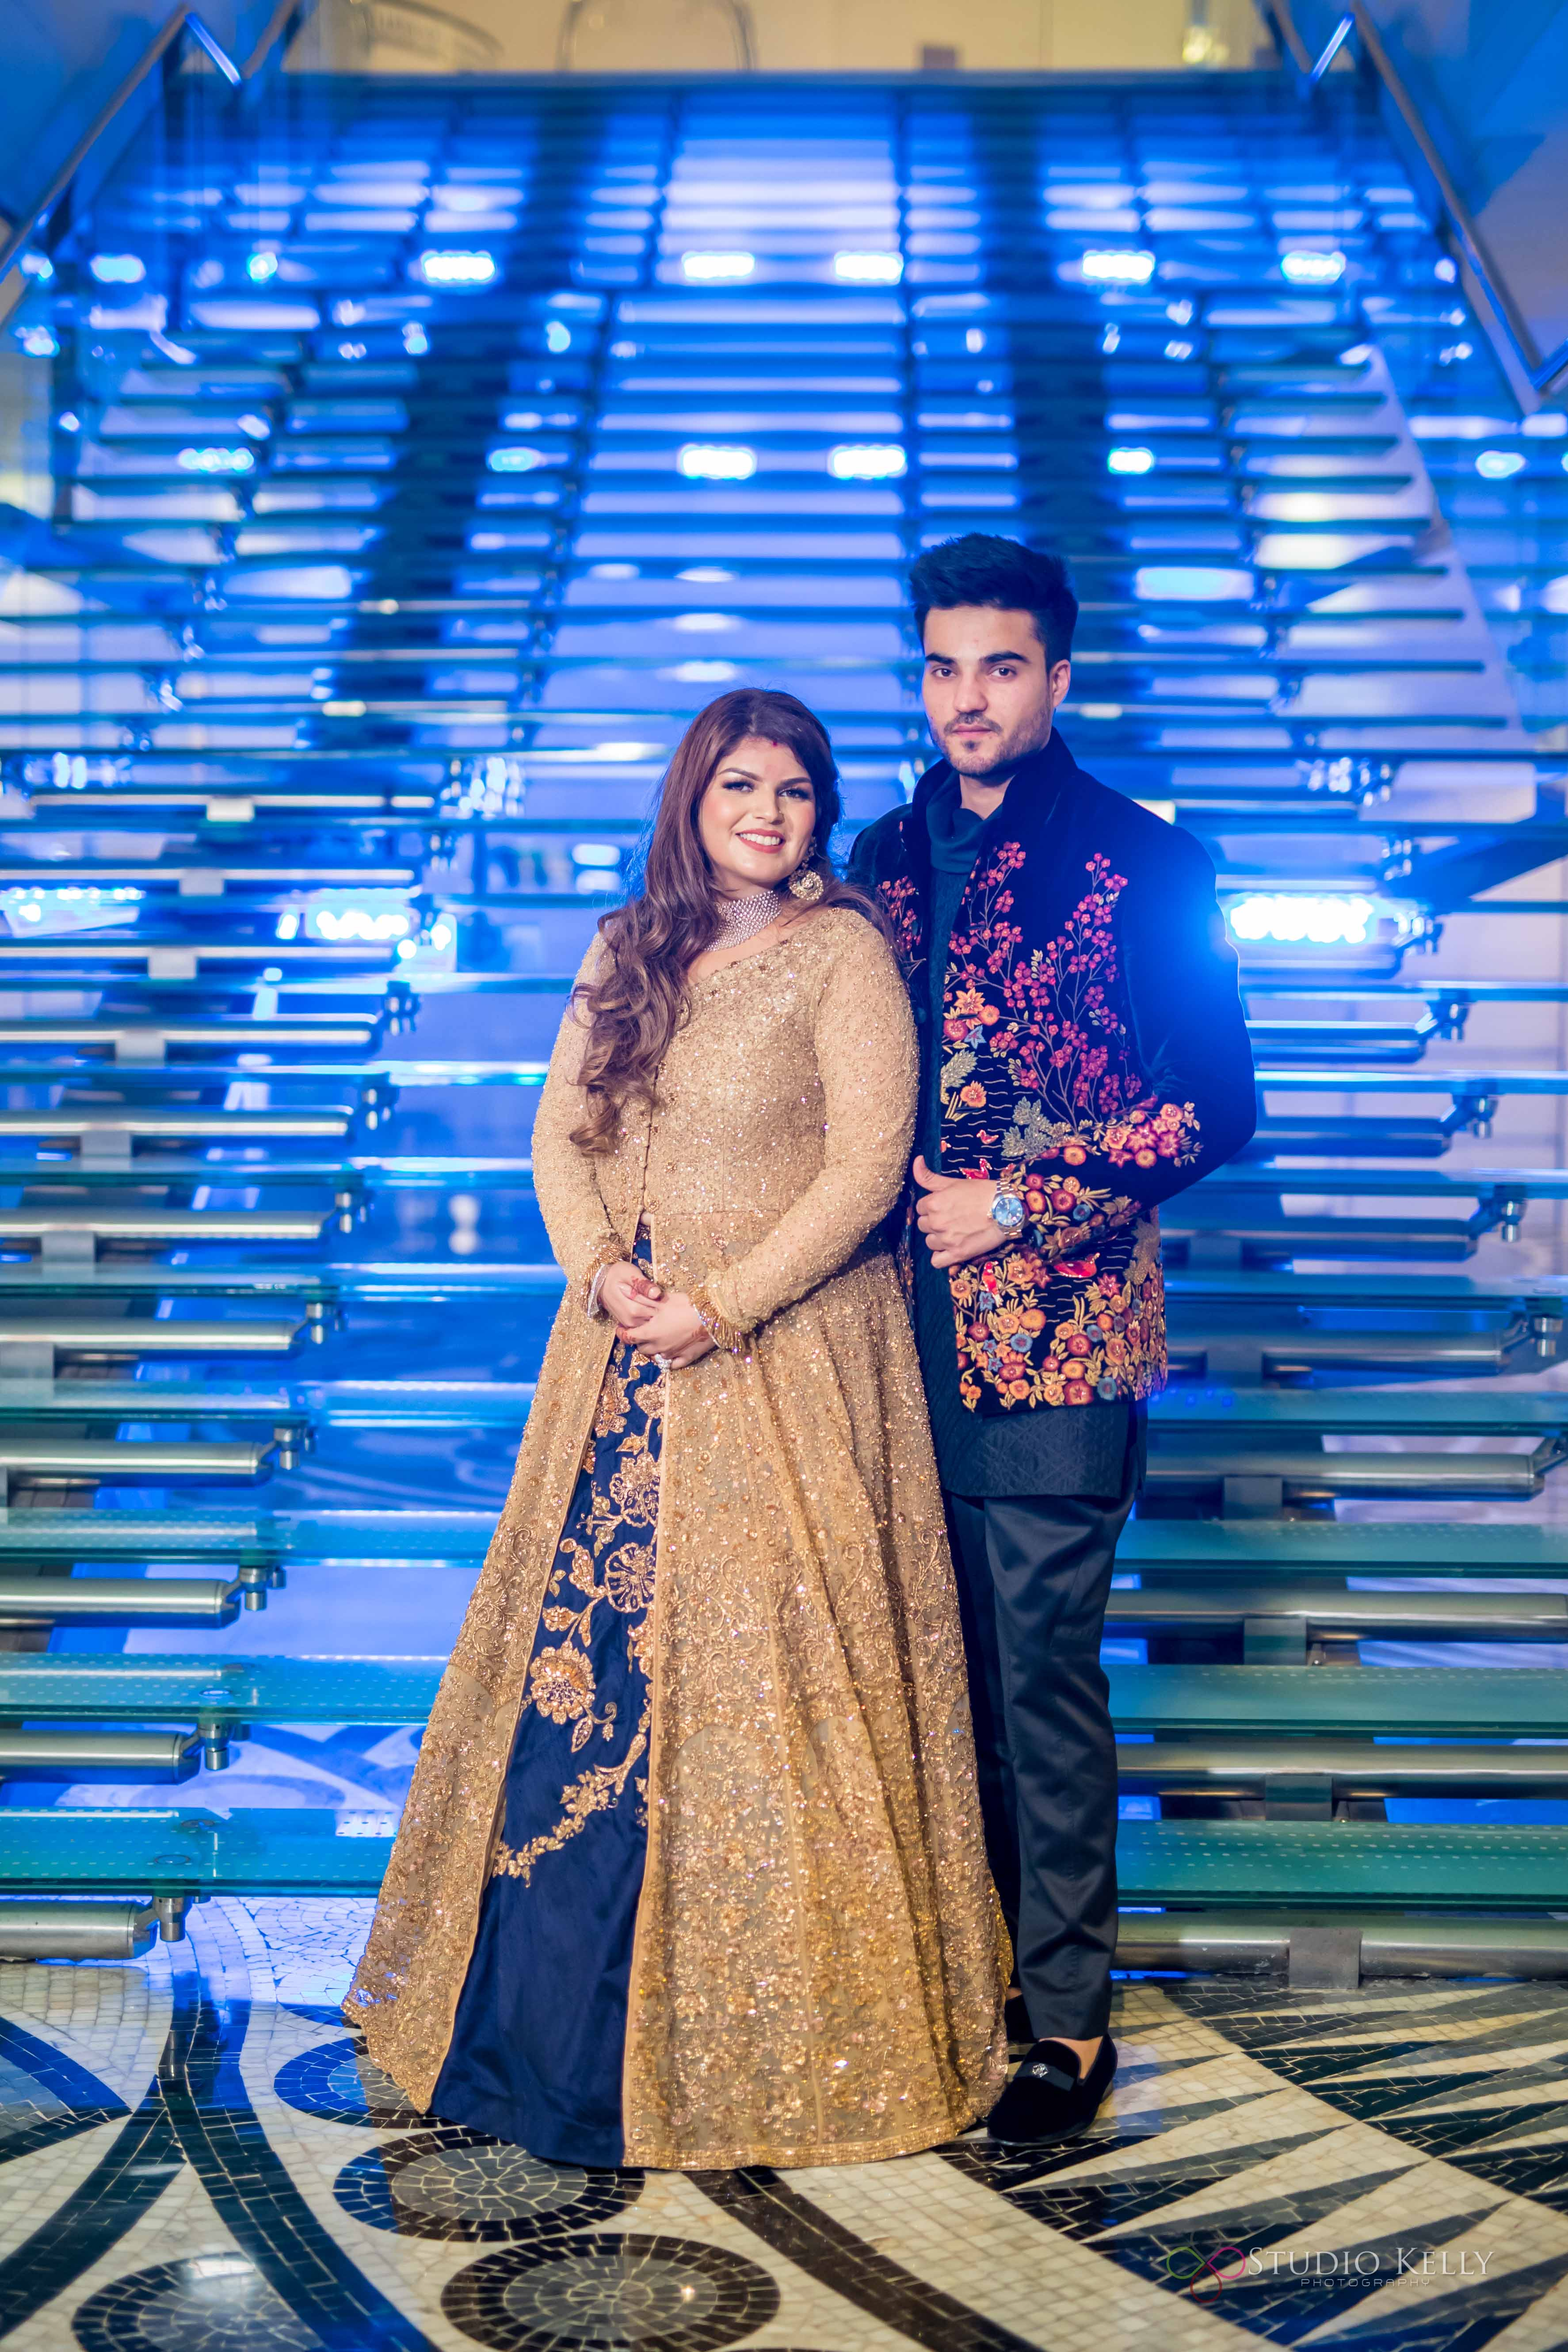 Indian Bride and Groom | Shyamal Bhumika Bridal wear | Gorgeous Engagement Dress| pretty bride | Violet bridal Gown | Pictures | Indian weddings | Luxurious Indian Weddings | Delhi weddings | Function Mania